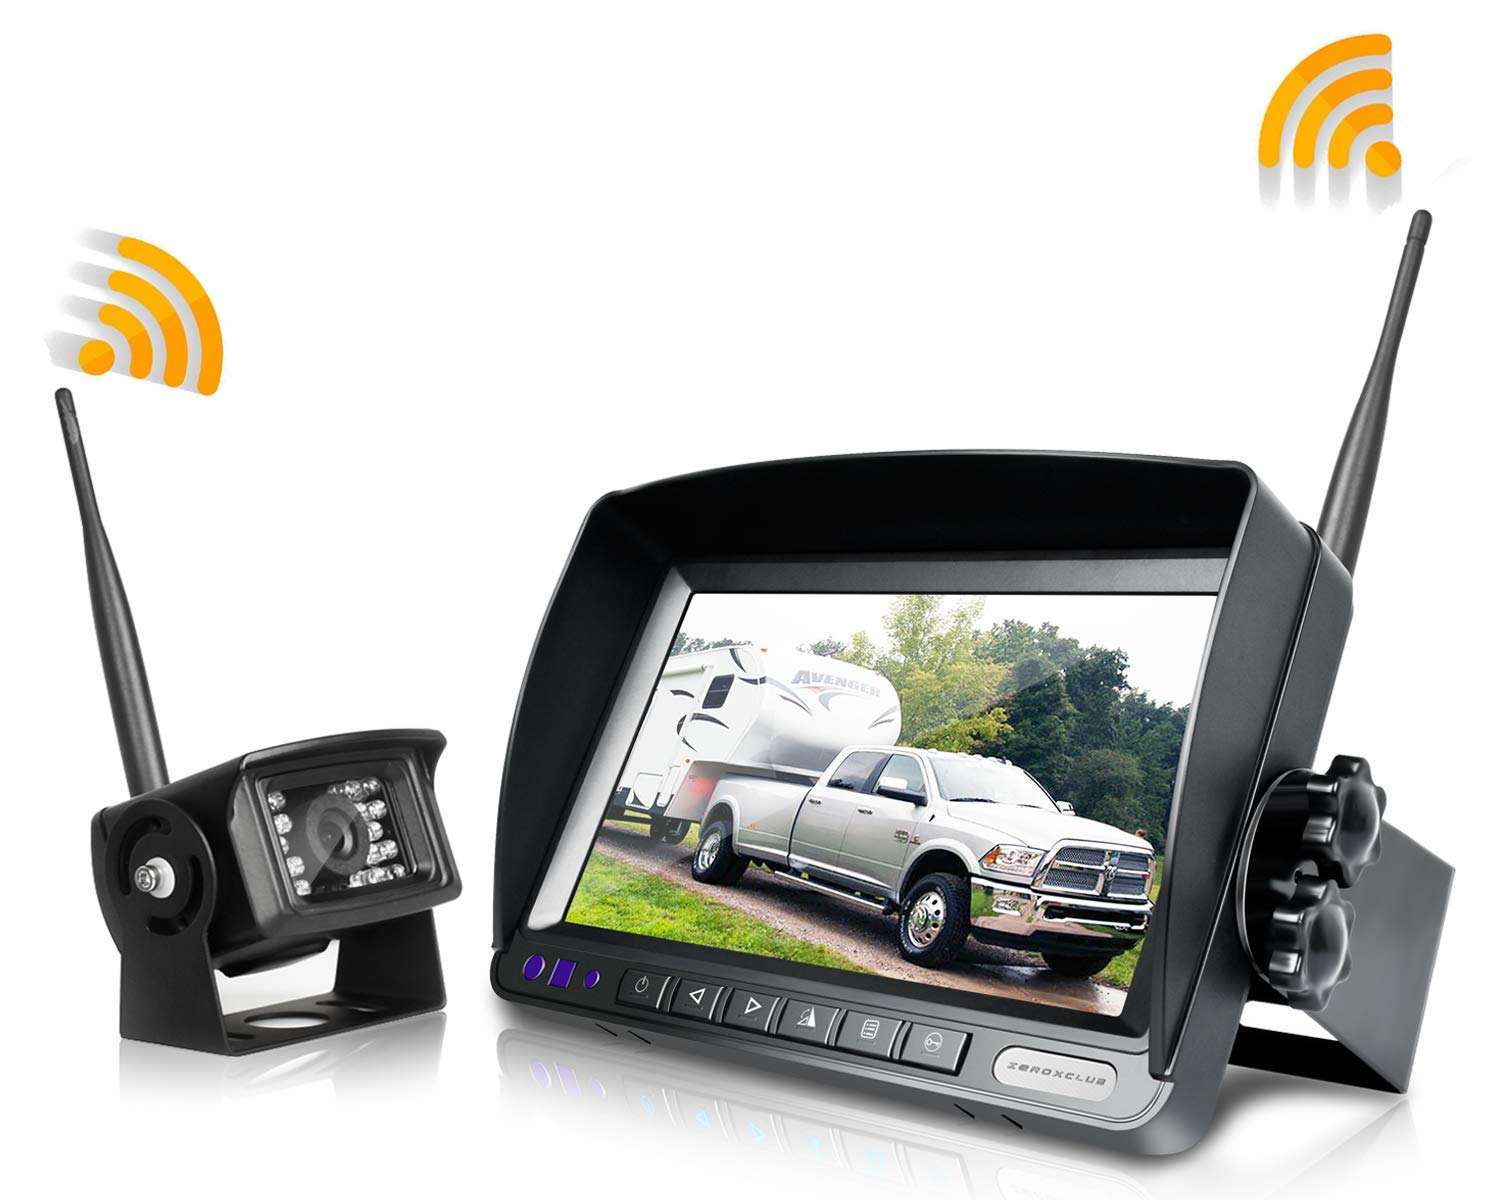 ZEROXCLUB Digital Wireless Backup Camera and System Kit